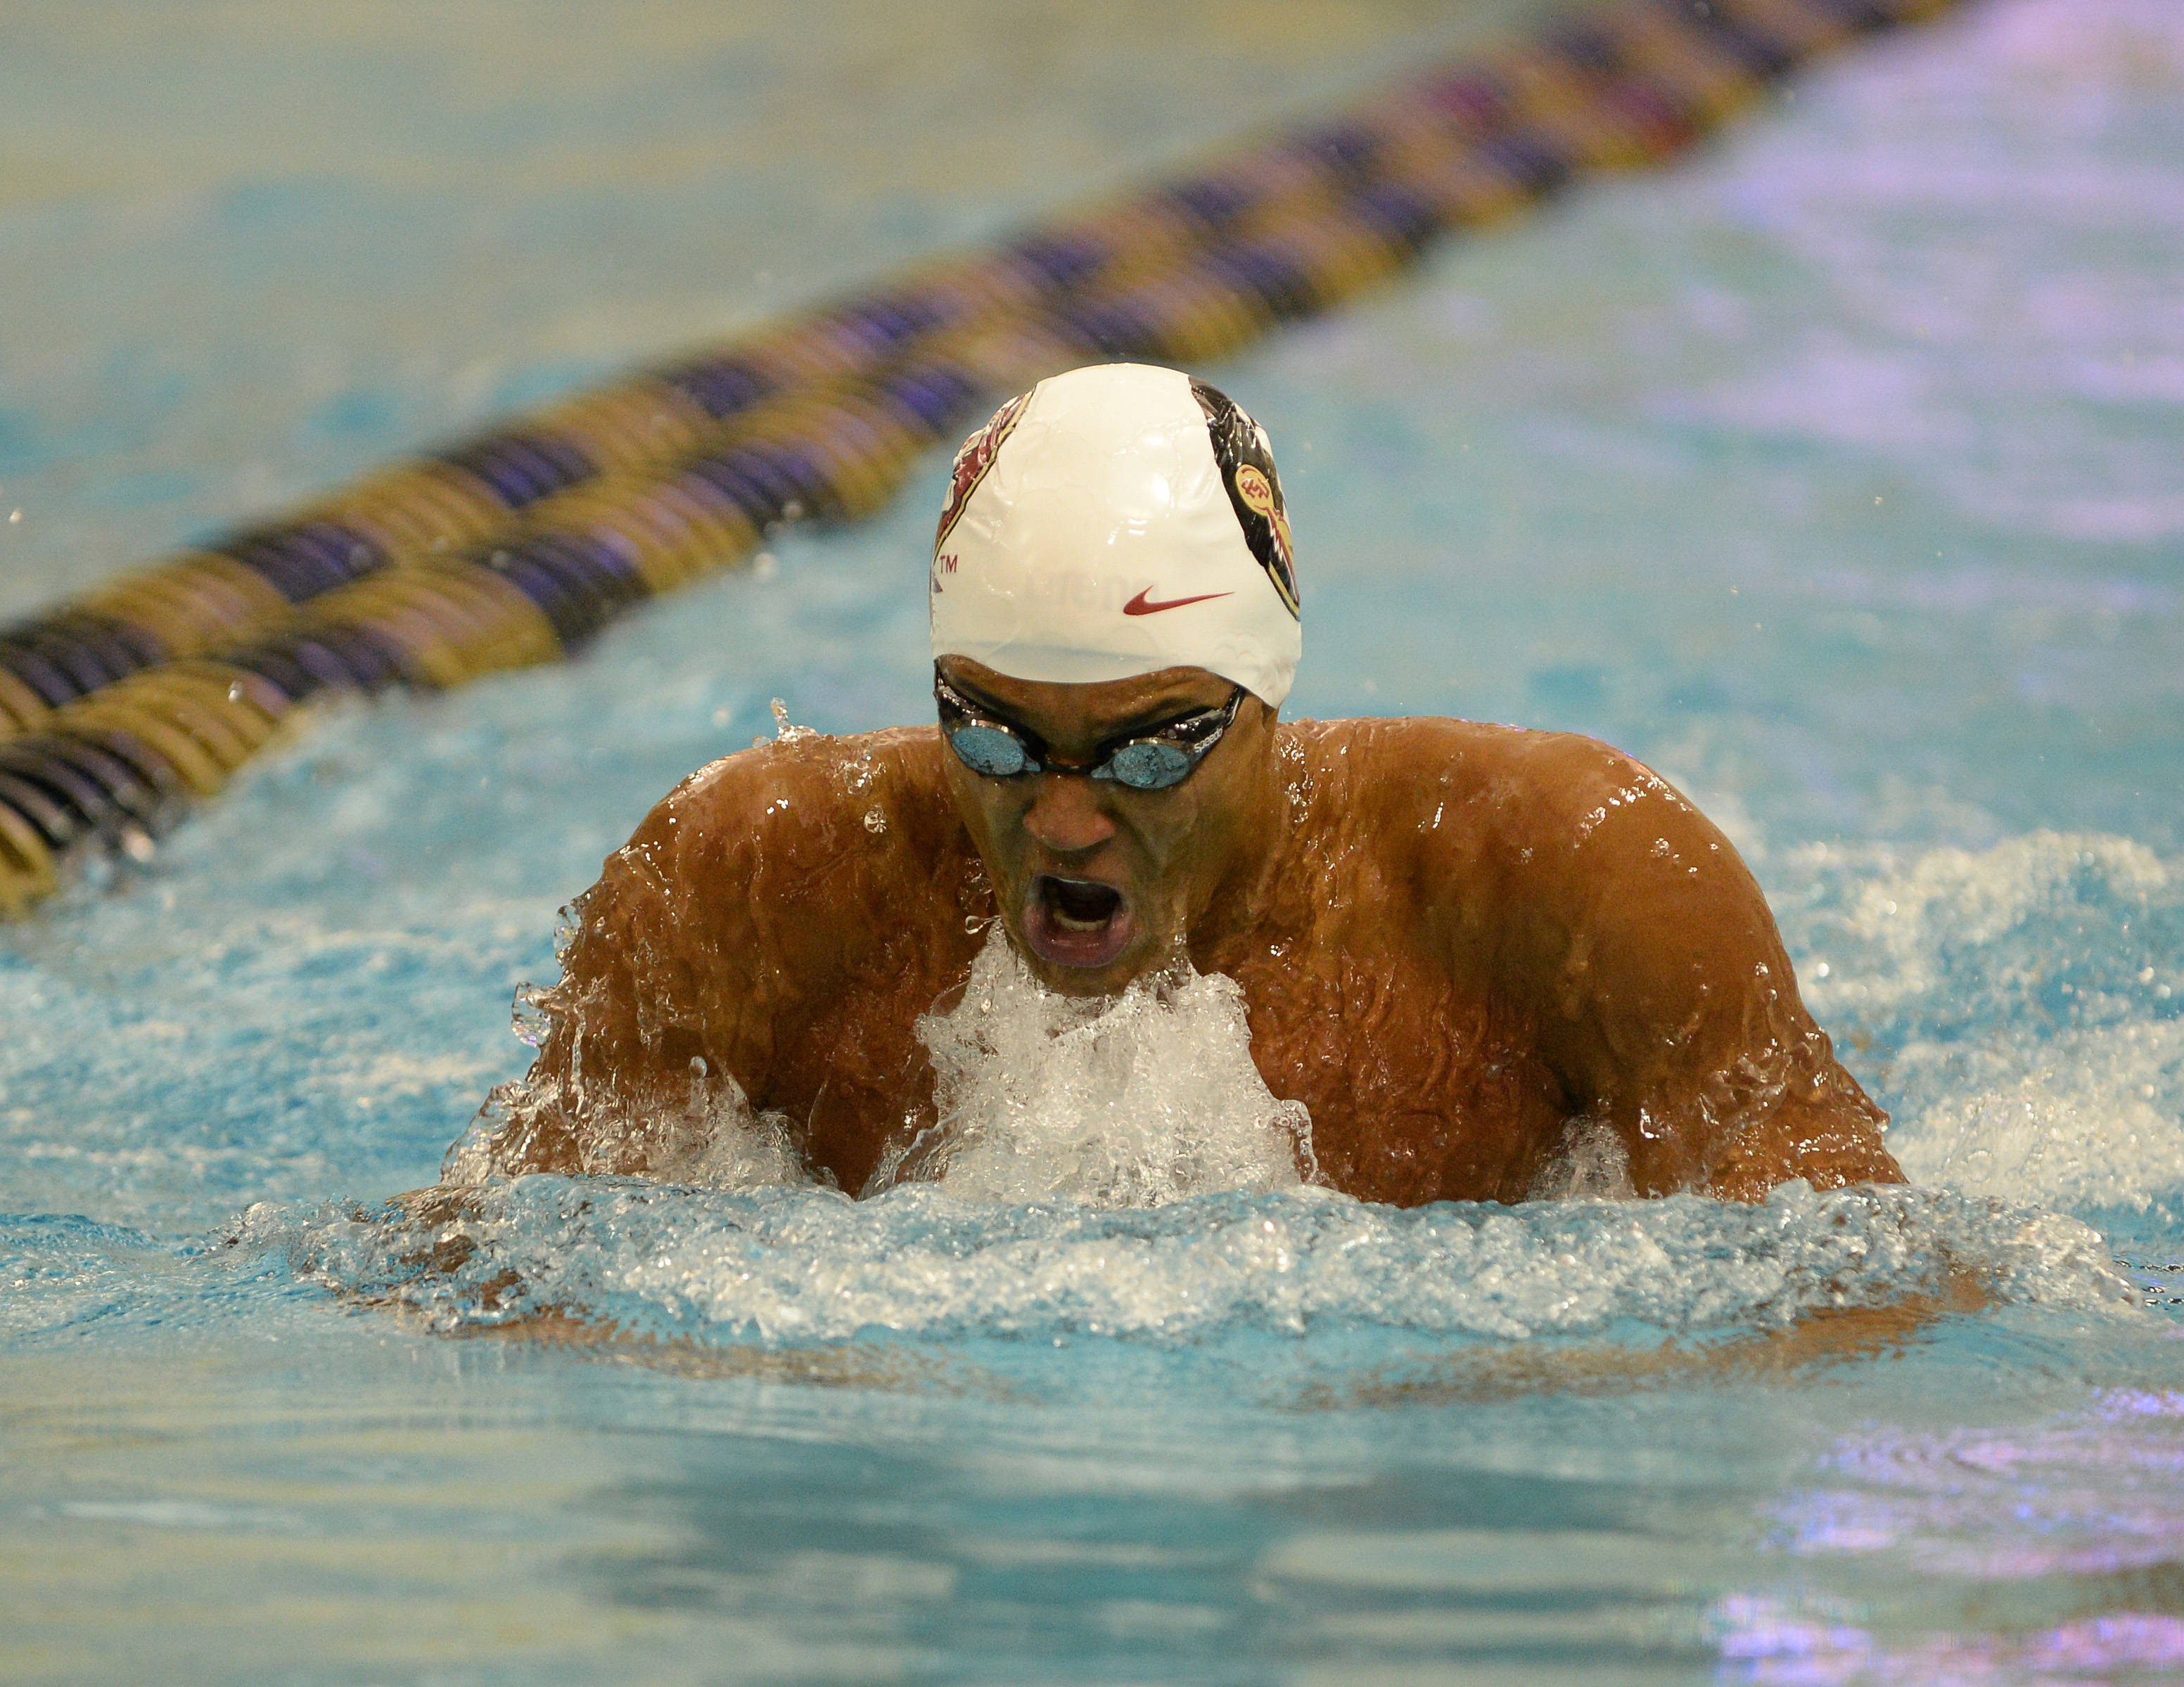 Jason Coombs swims the 100 breast - Mitch White